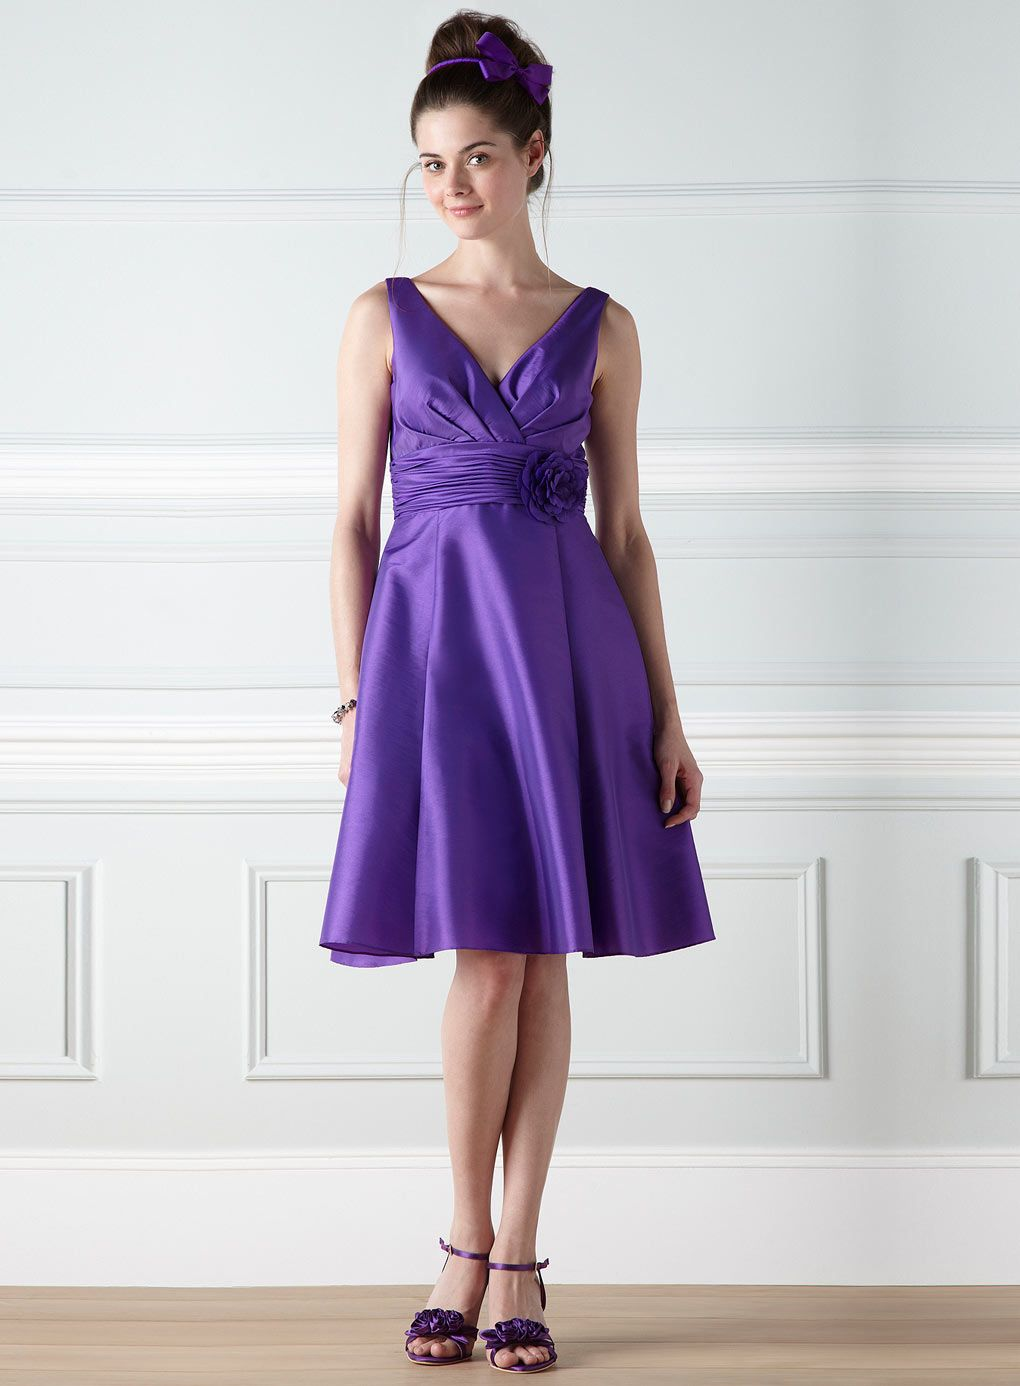 Cecily Purple Taffeta Bridesmaid Dress - bridesmaid dresses - adult ...